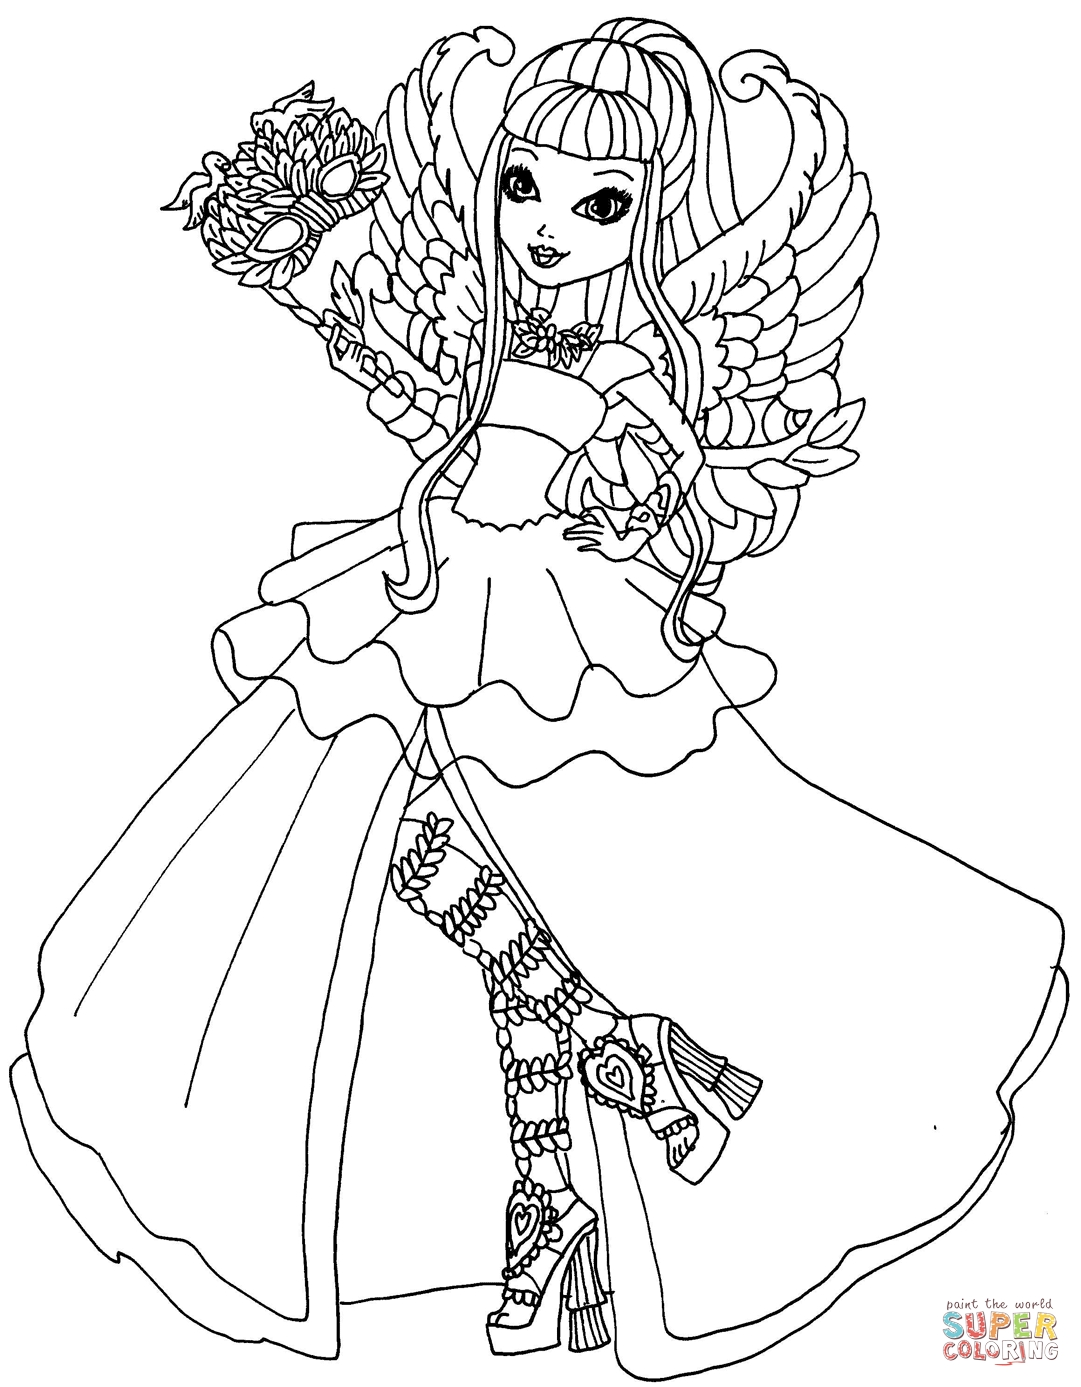 1081x1387 Ever After High To Color To Print Free Coloring Sheets